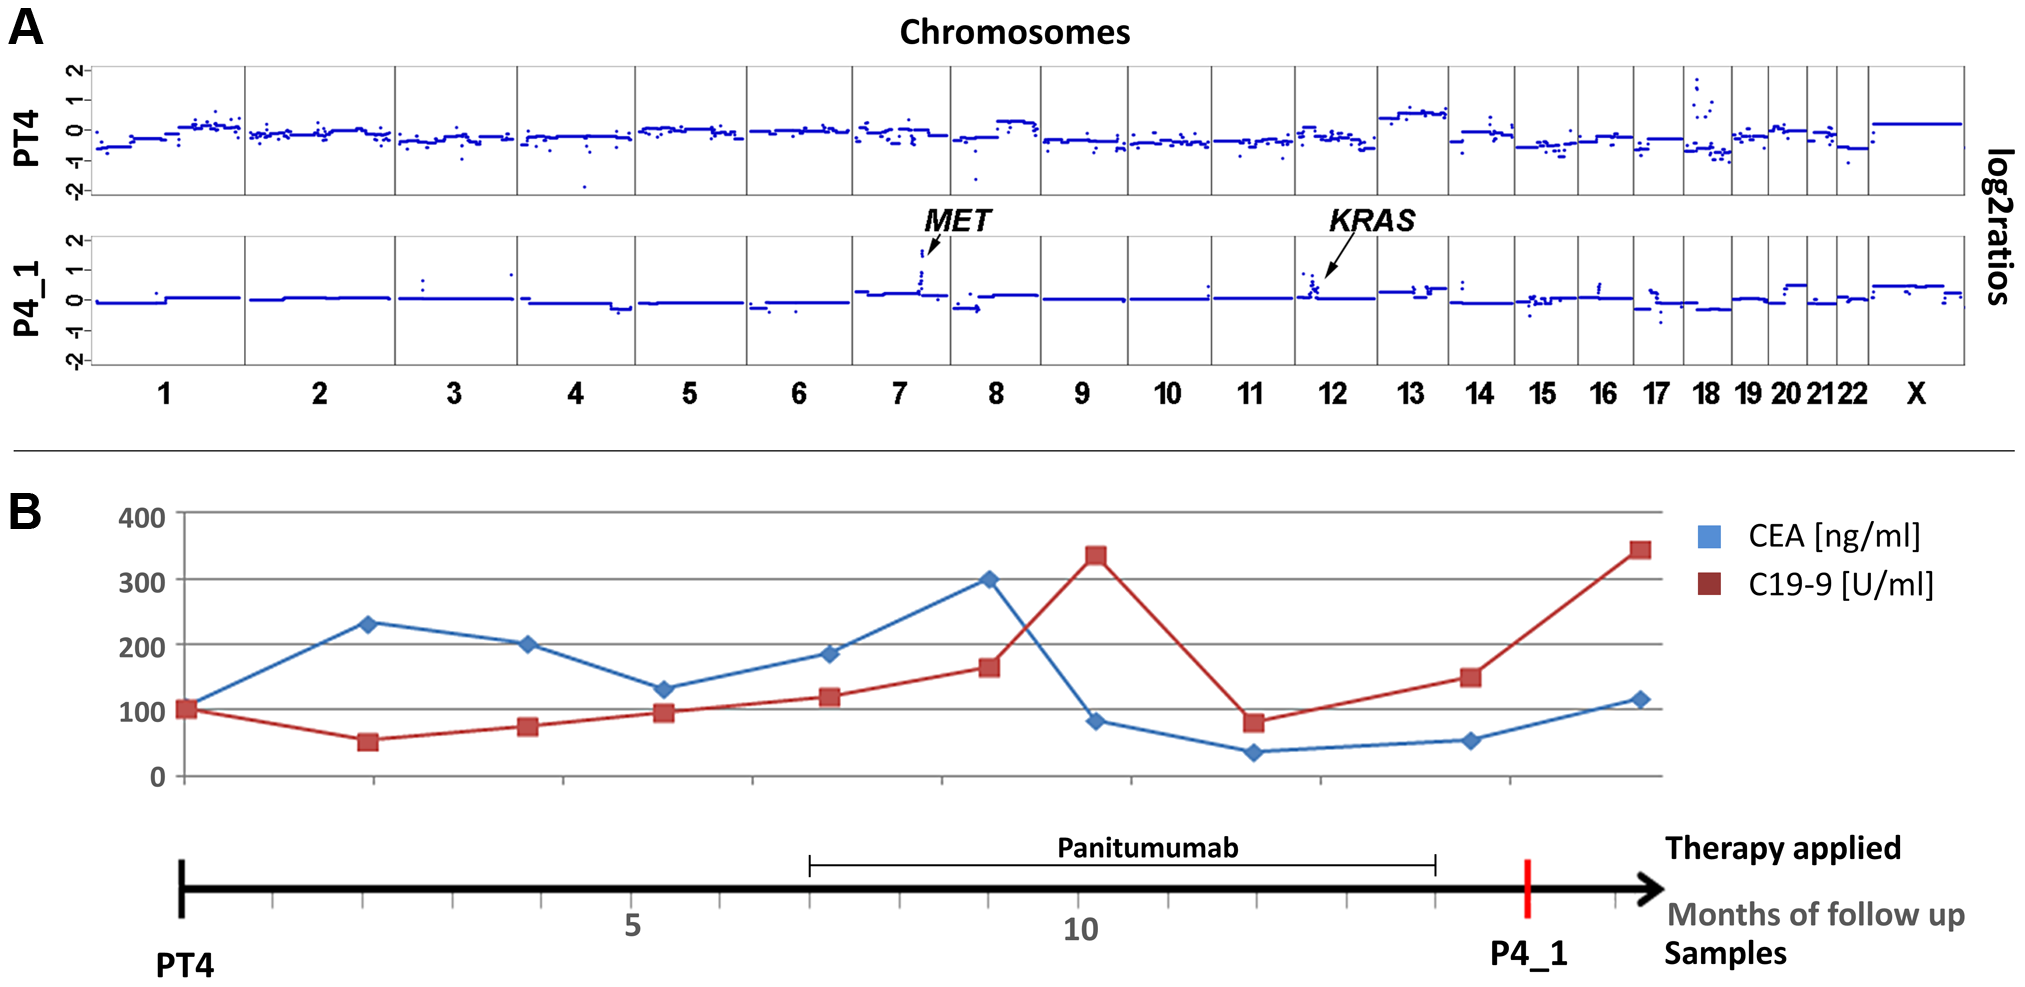 Co-occurrence of amplifications of the <i>KRAS</i> and <i>MET</i> genes observed after 7 months of treatment with panitumumab in patient #4.